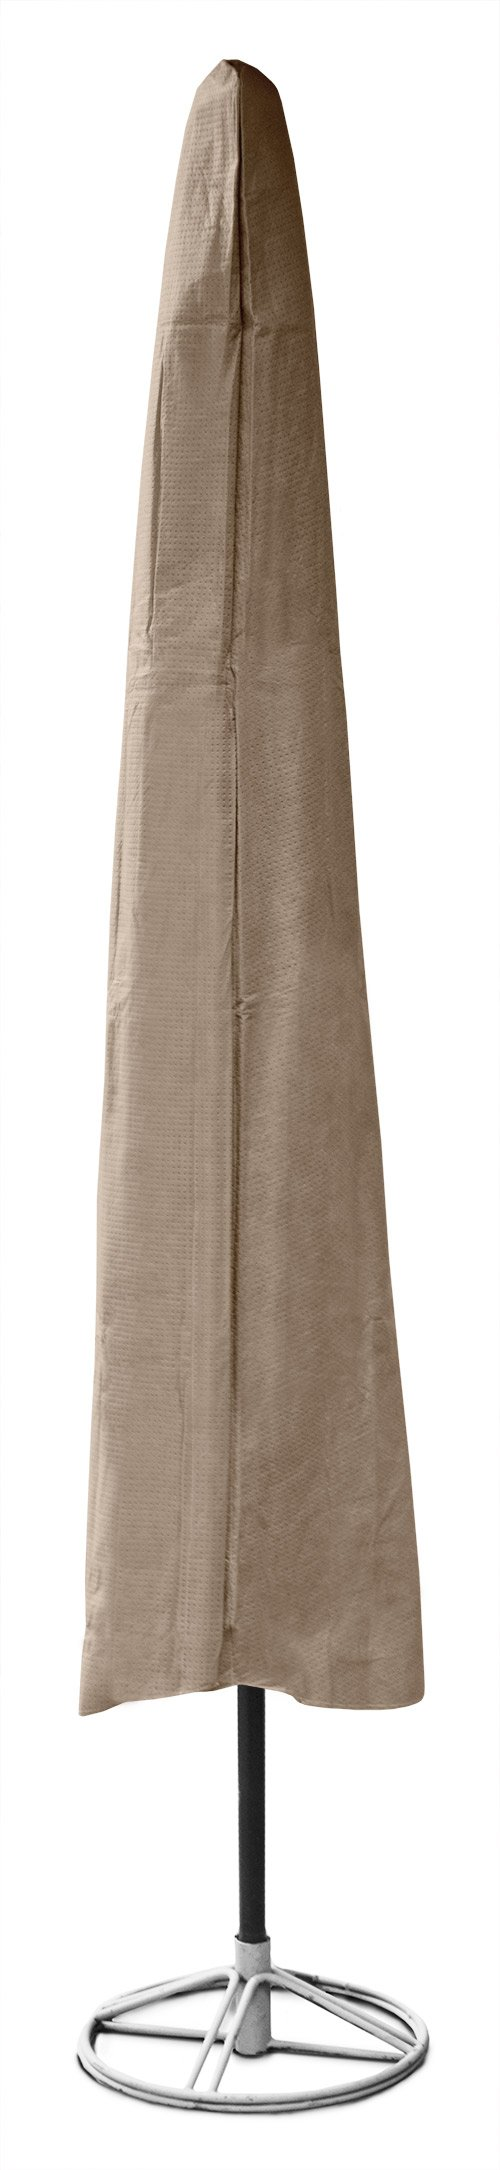 KoverRoos III 34282 11-Feet Umbrella Cover, 88-Inch Height by 48-Inch Circumference, Taupe by KOVERROOS